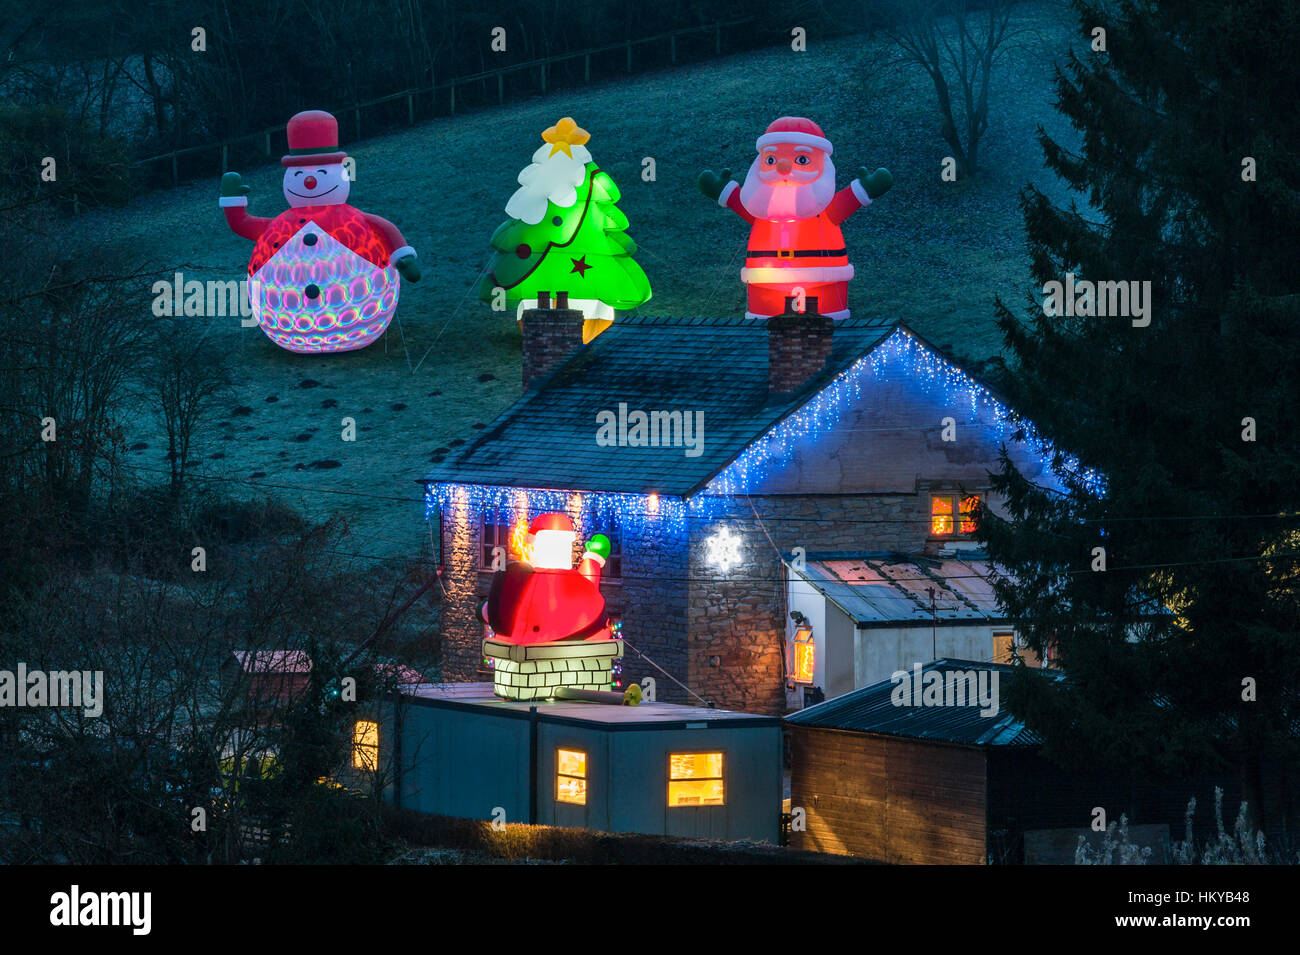 Huge illuminated inflatable Christmas figures surround a remote cottage at night in rural Herefordshire, UK. - Stock Image